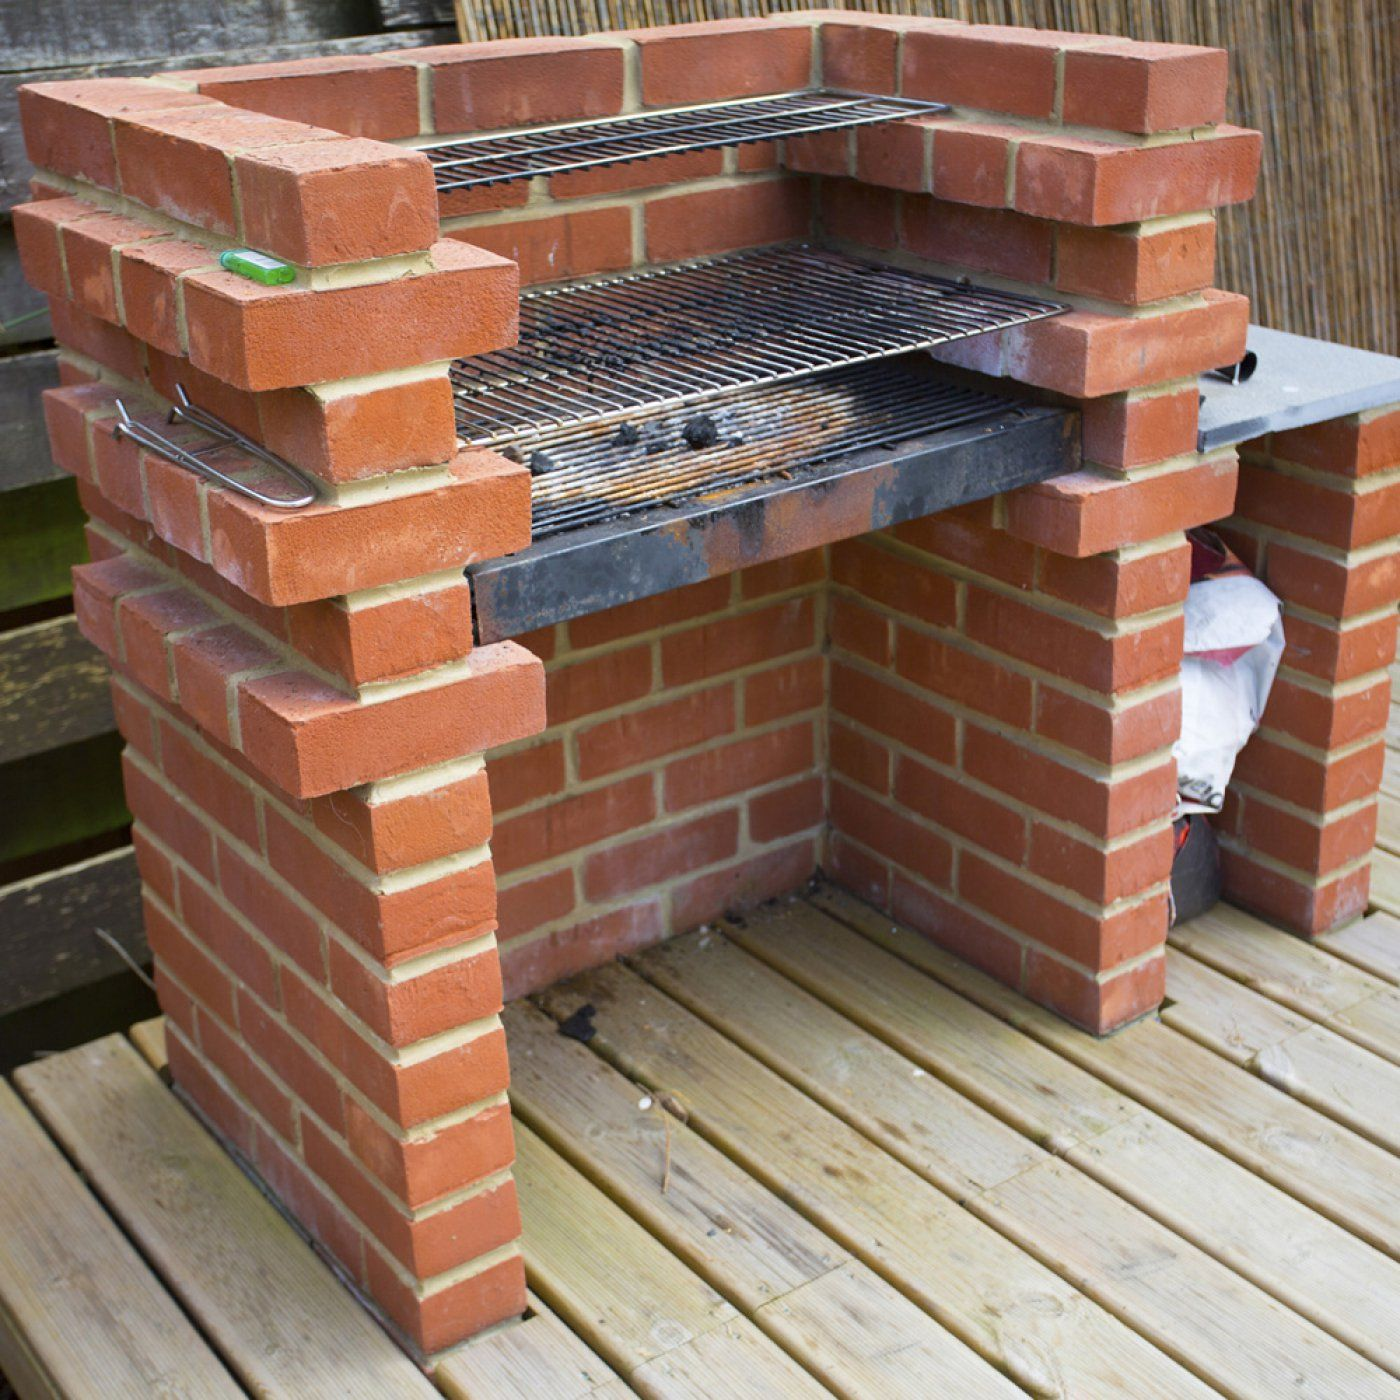 Comment construire un barbecue en brique barbecue en for Modele de barbecue exterieur en brique